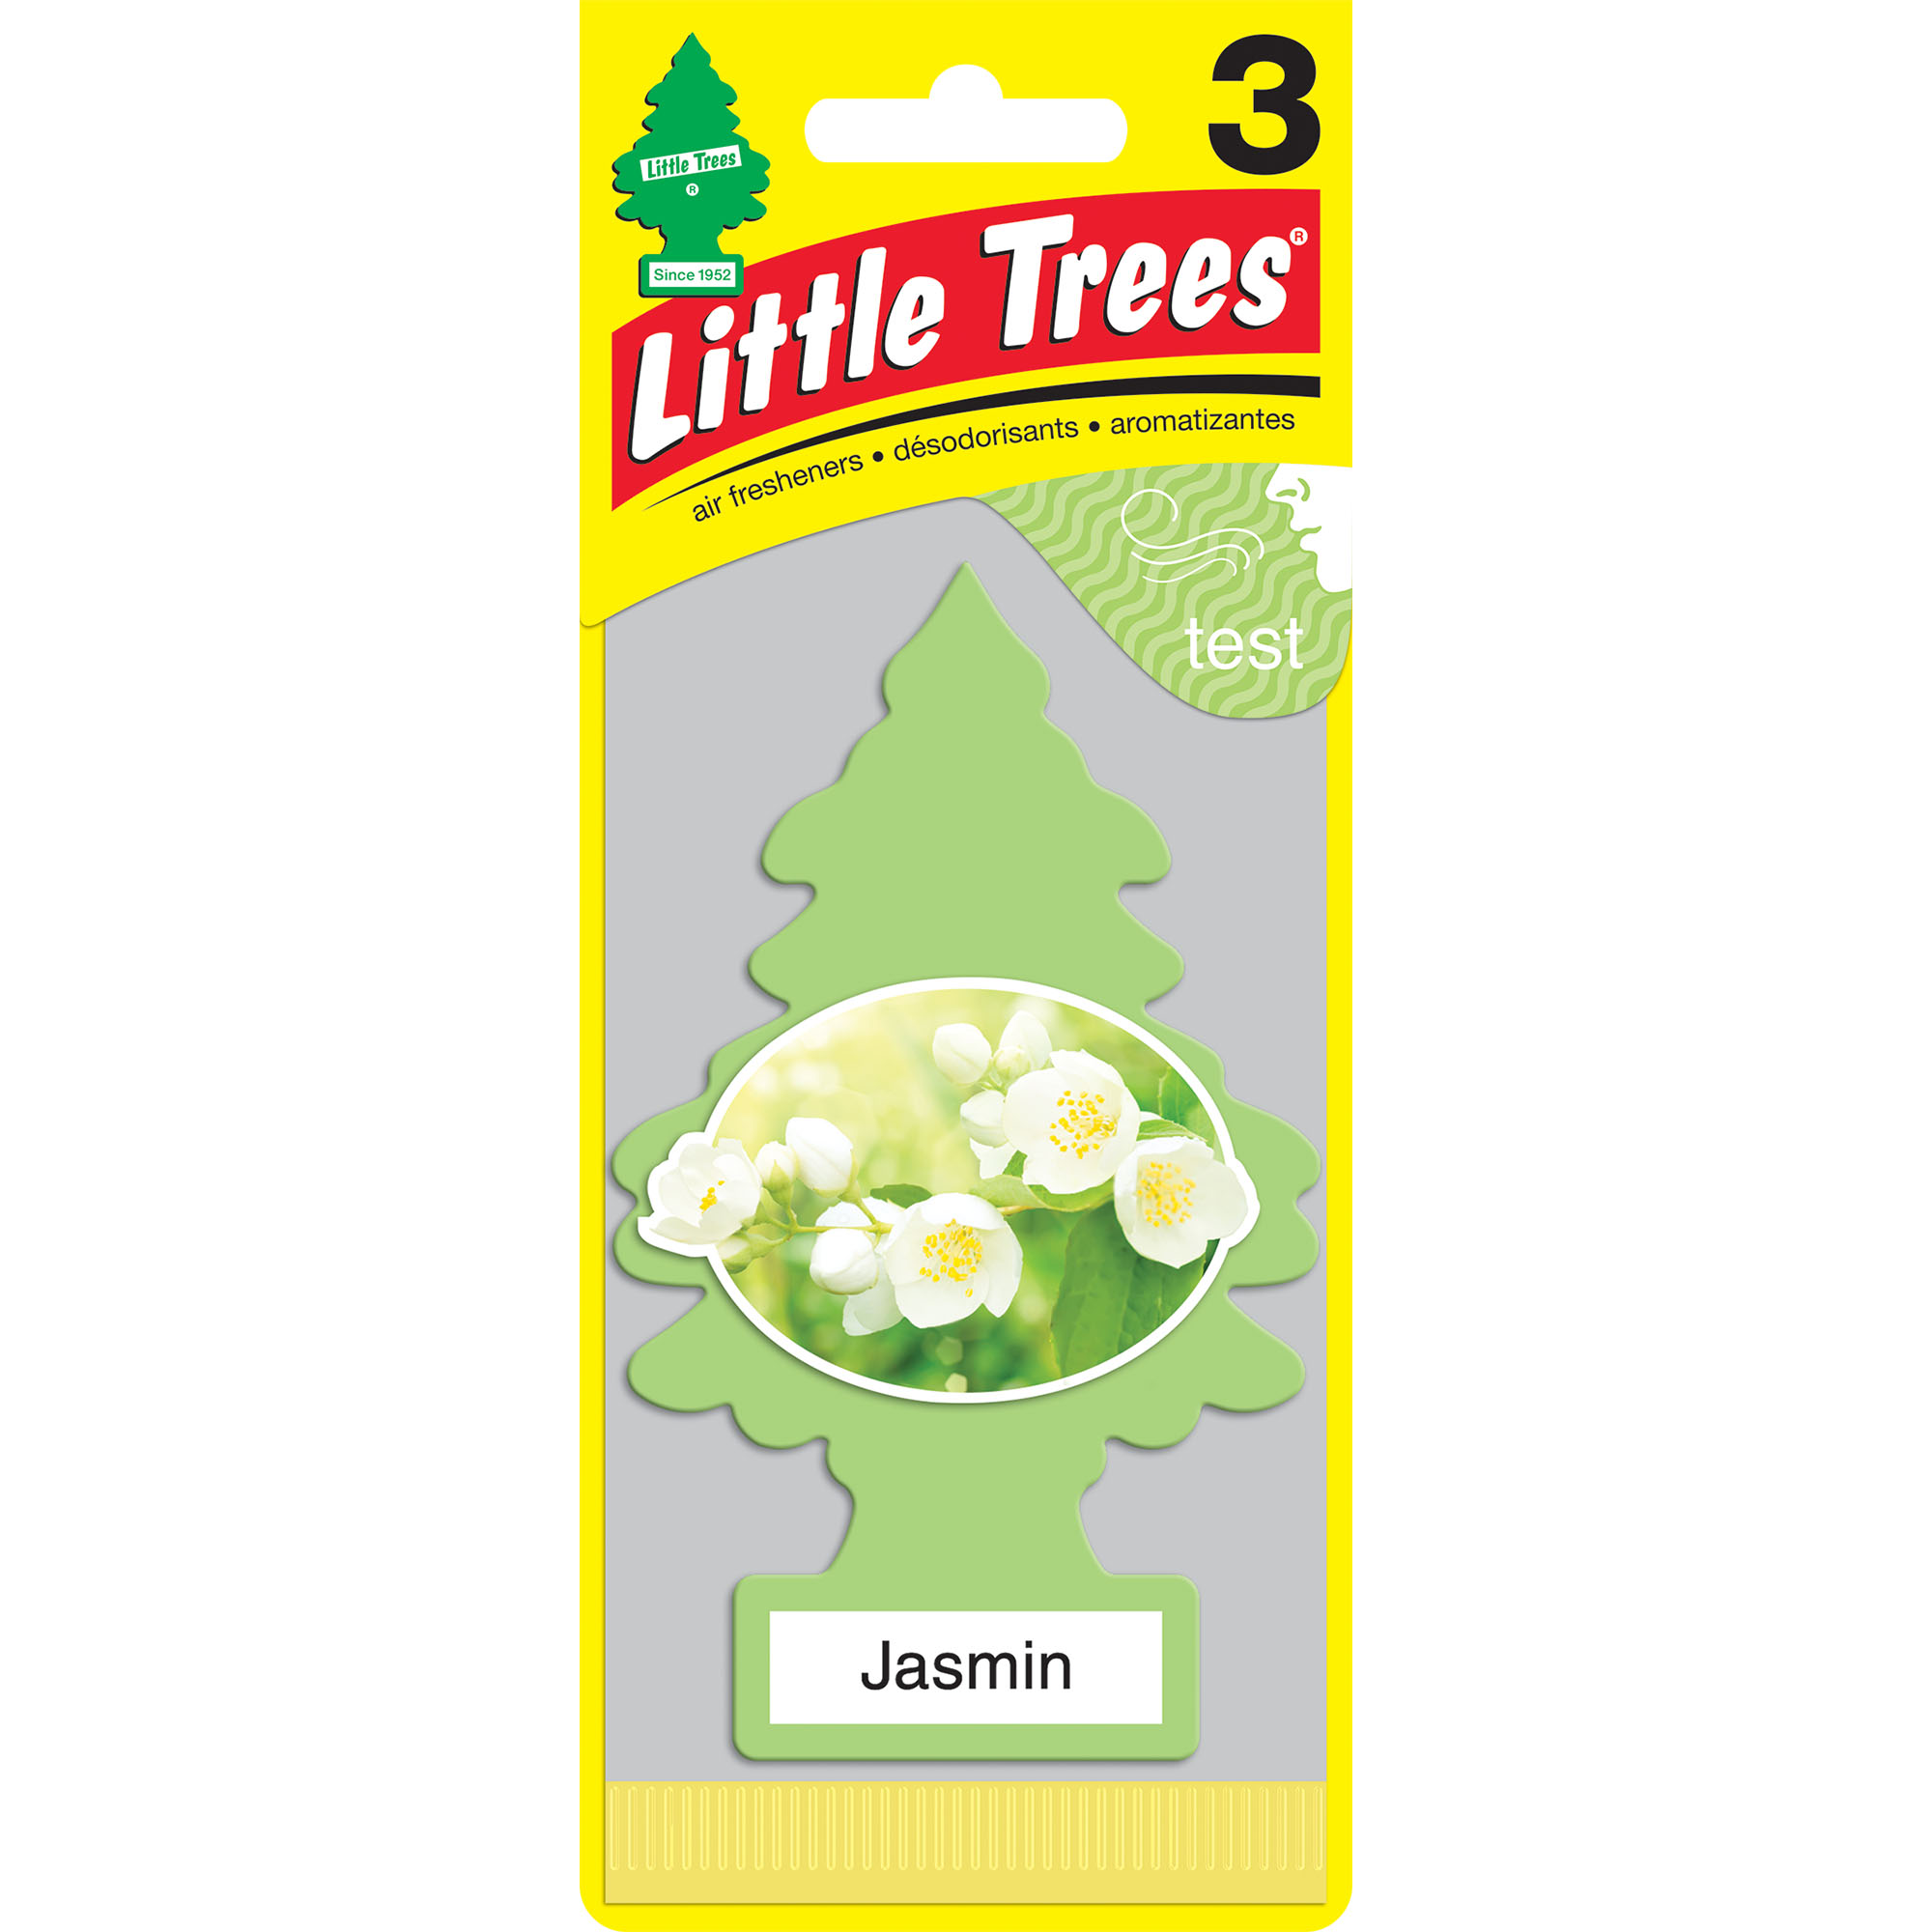 Little Trees Air Freshener Jasmin Fragrance 3-Pack